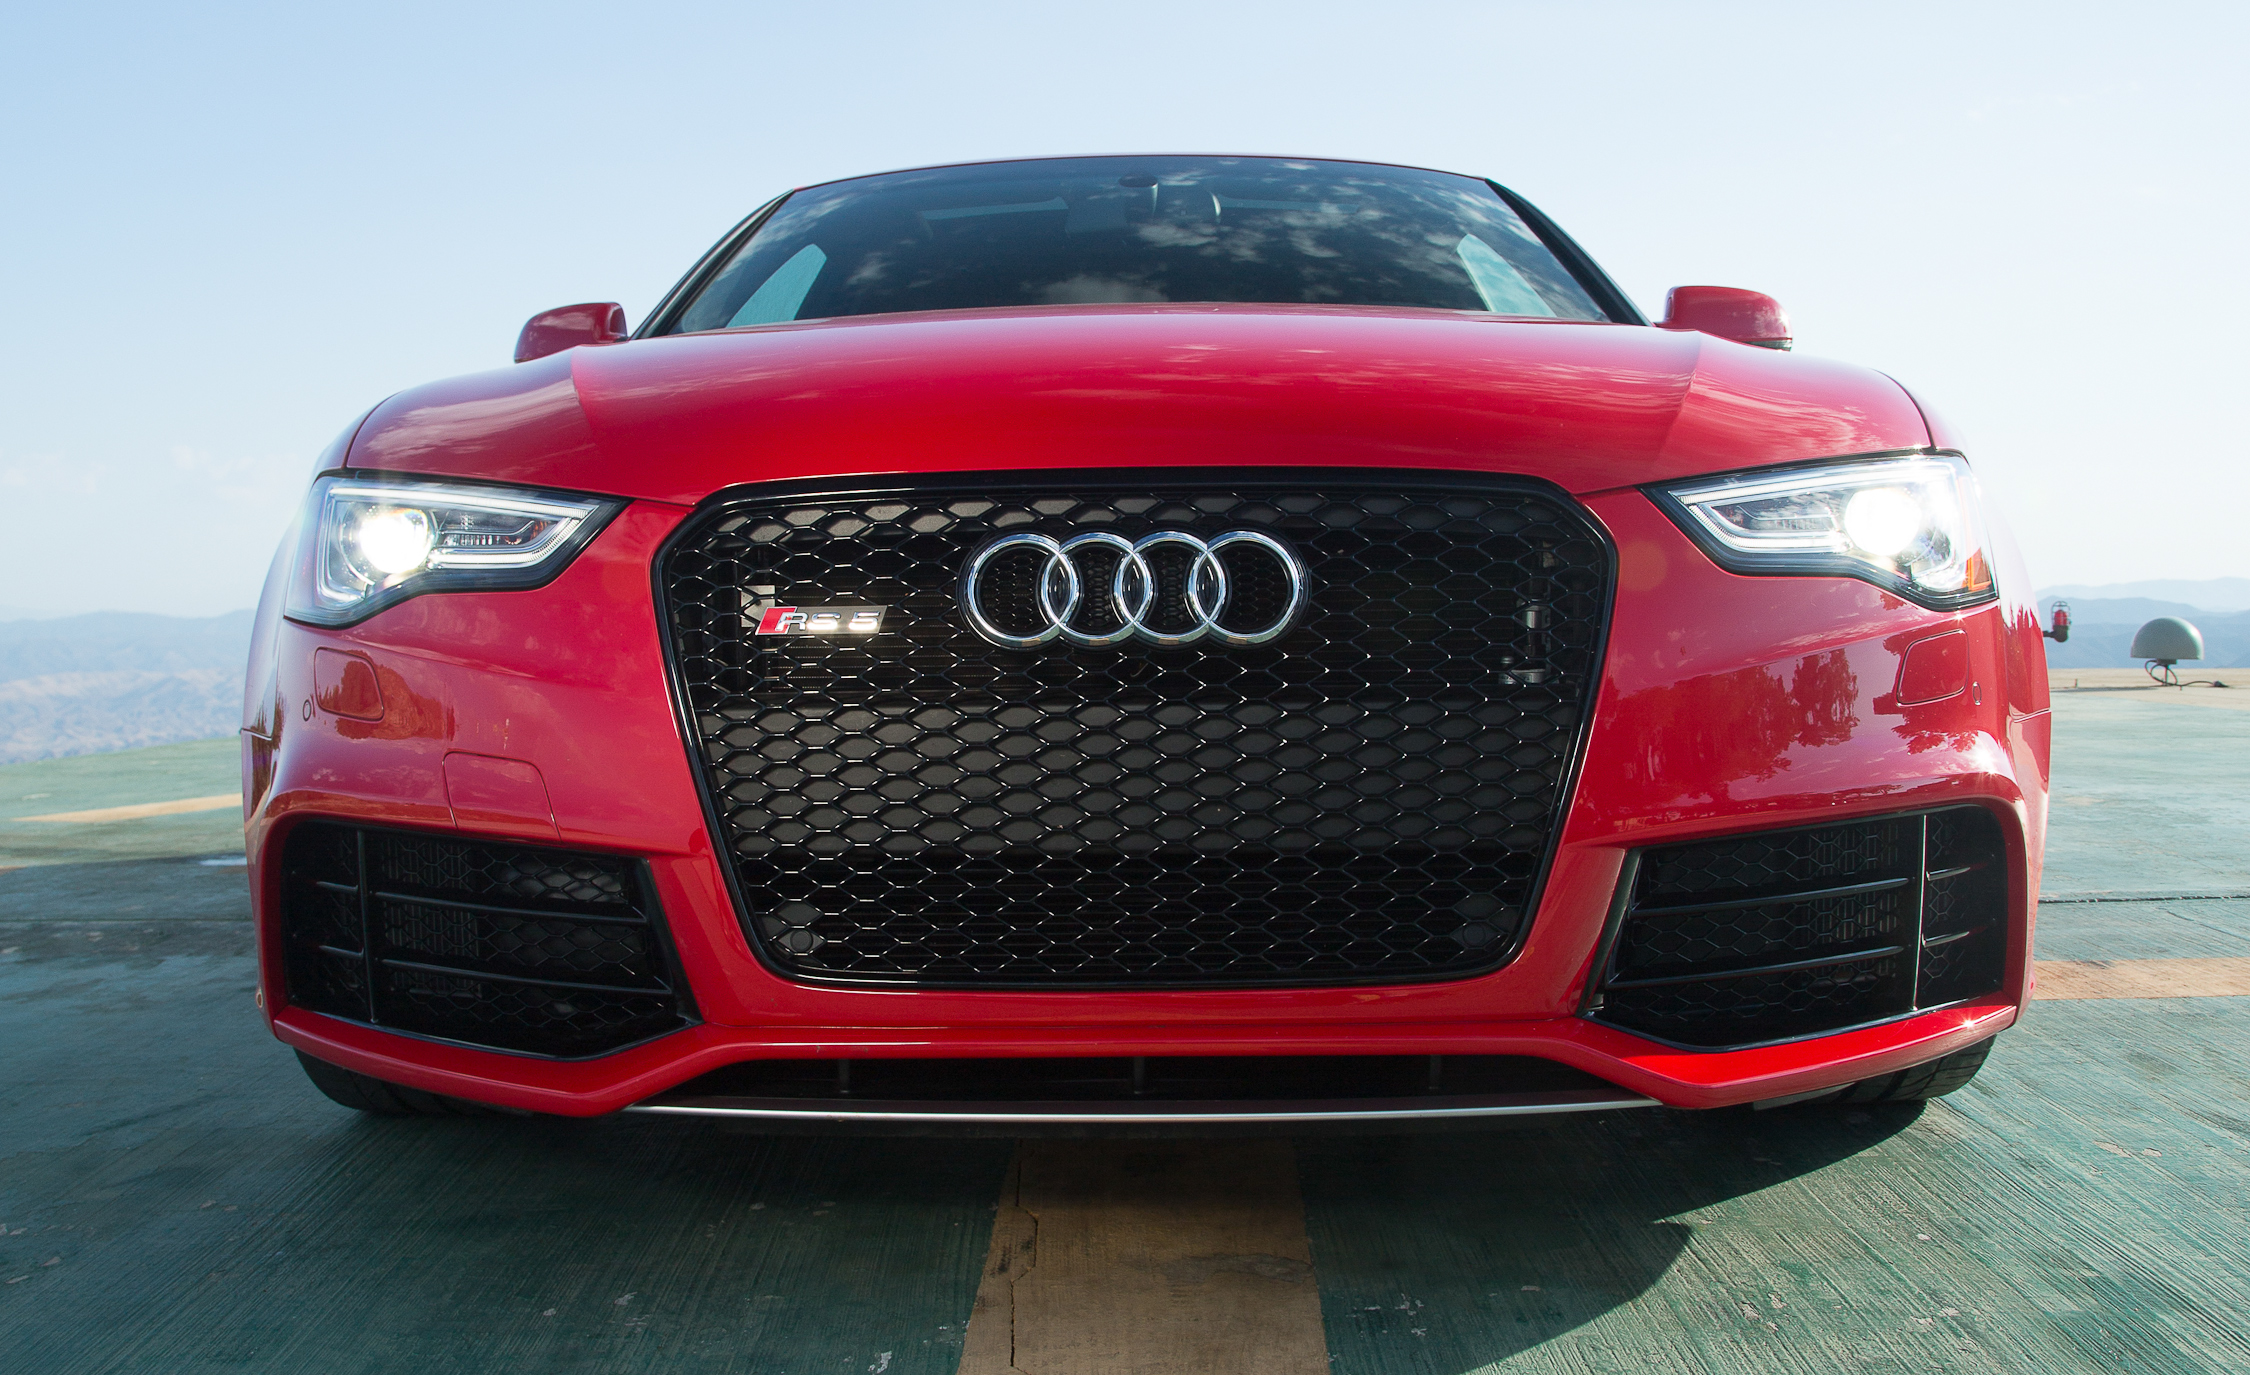 2013 Audi RS 5 Exterior Front End (View 18 of 41)